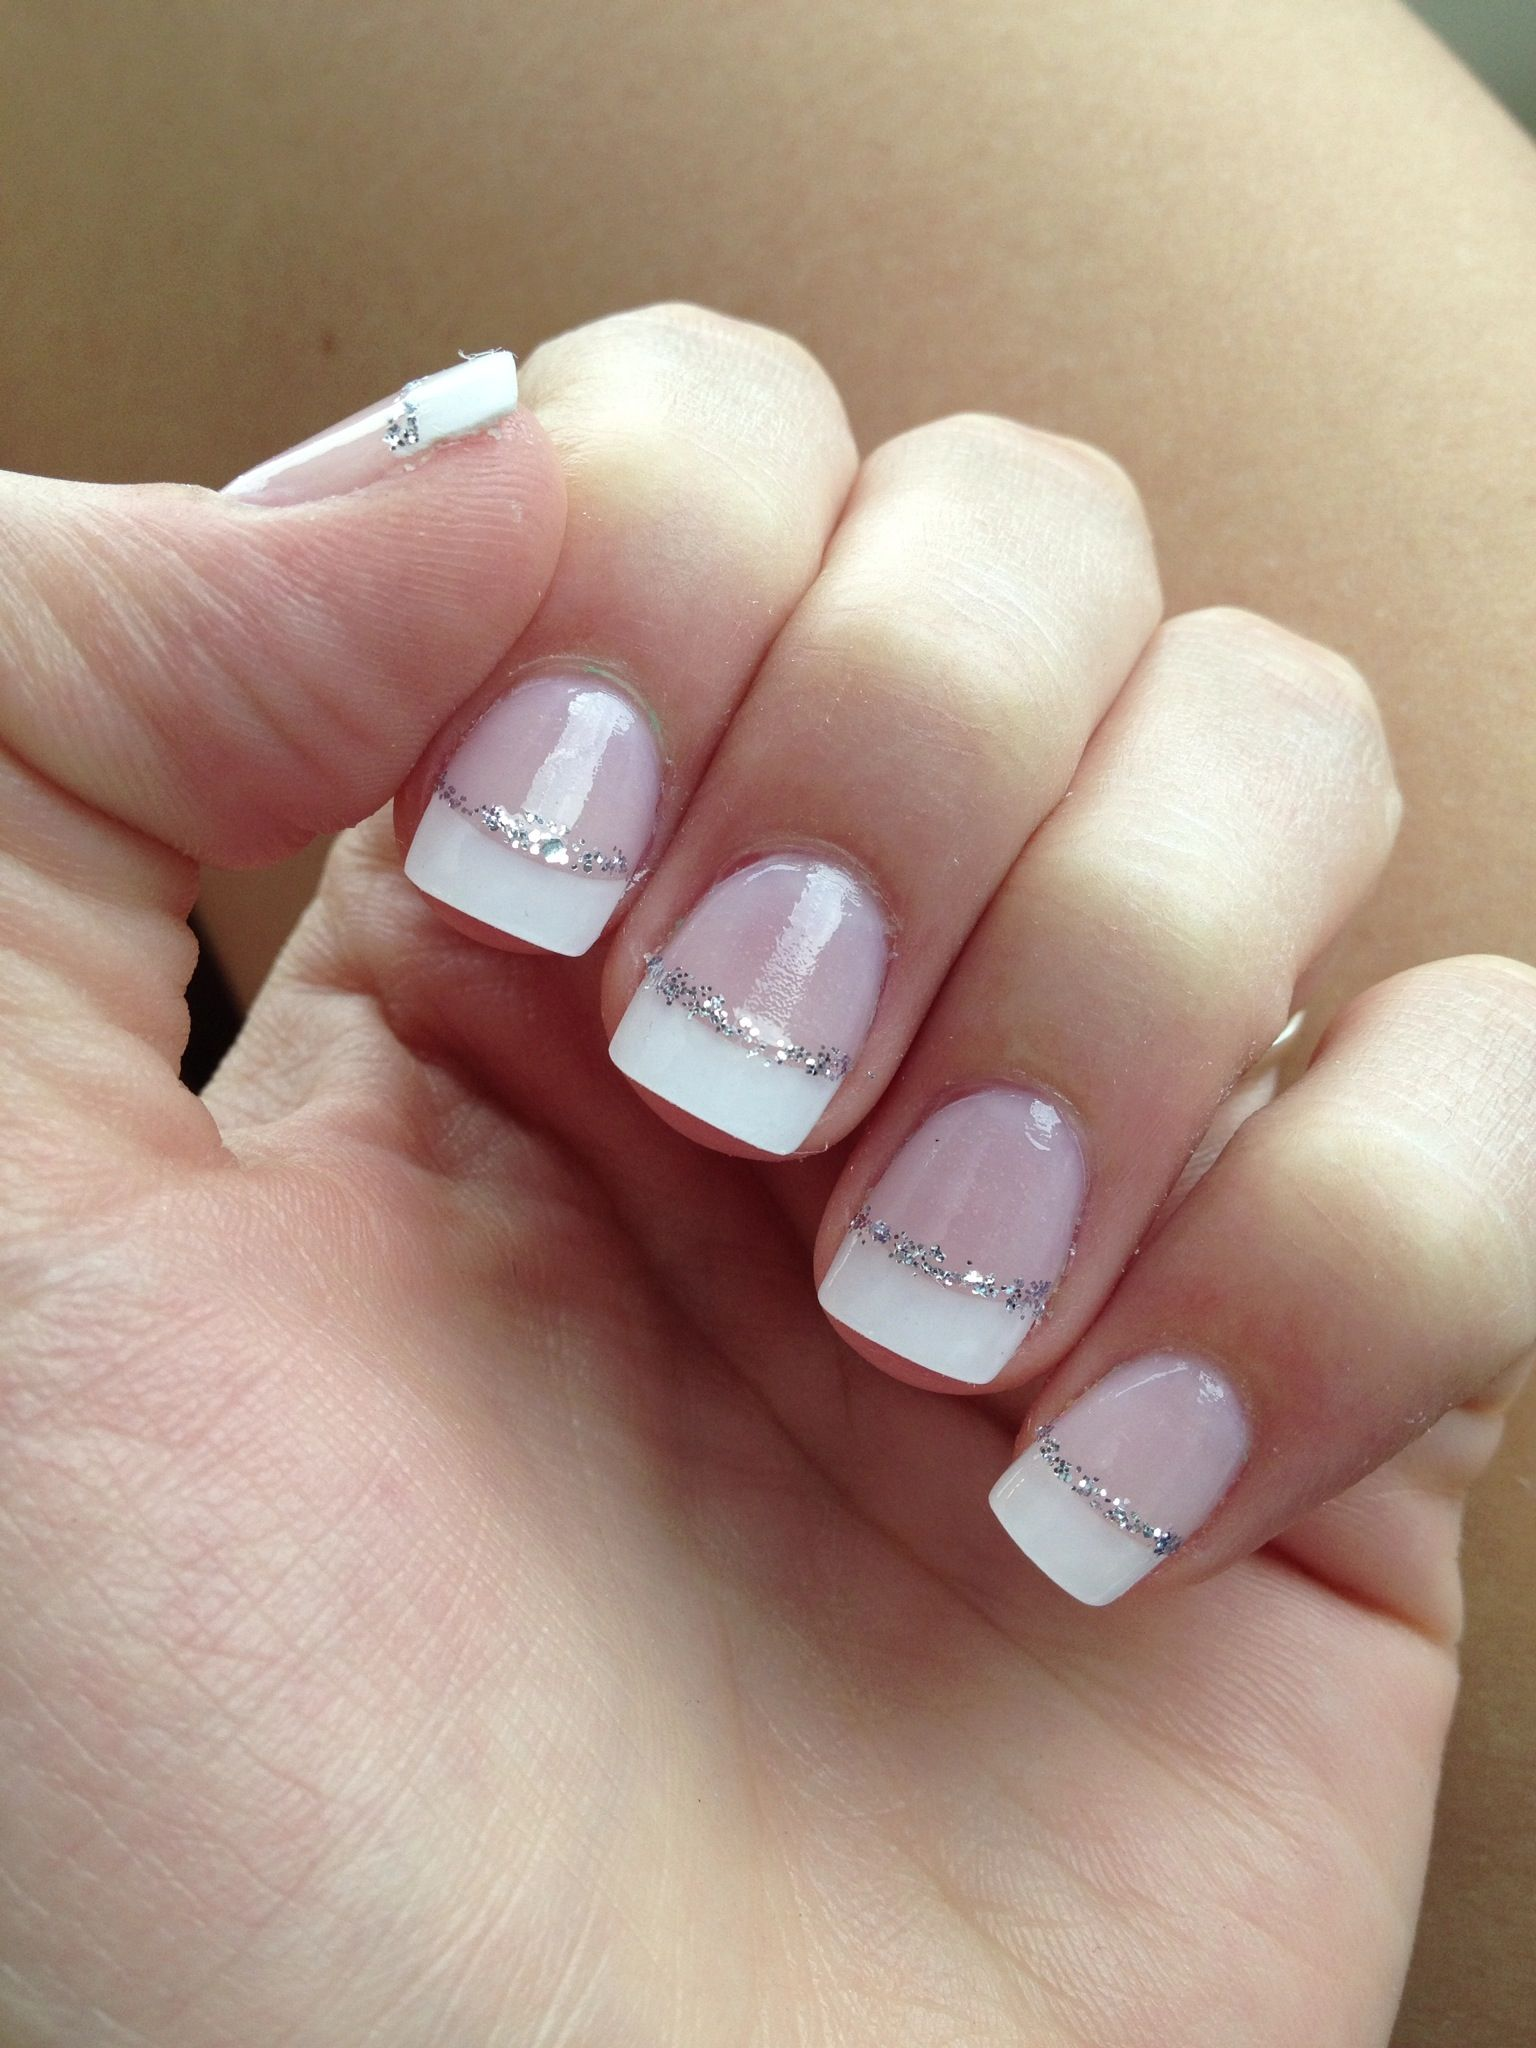 french nails false nails press on nails natural nails silver glitter nails nail ideas. Black Bedroom Furniture Sets. Home Design Ideas